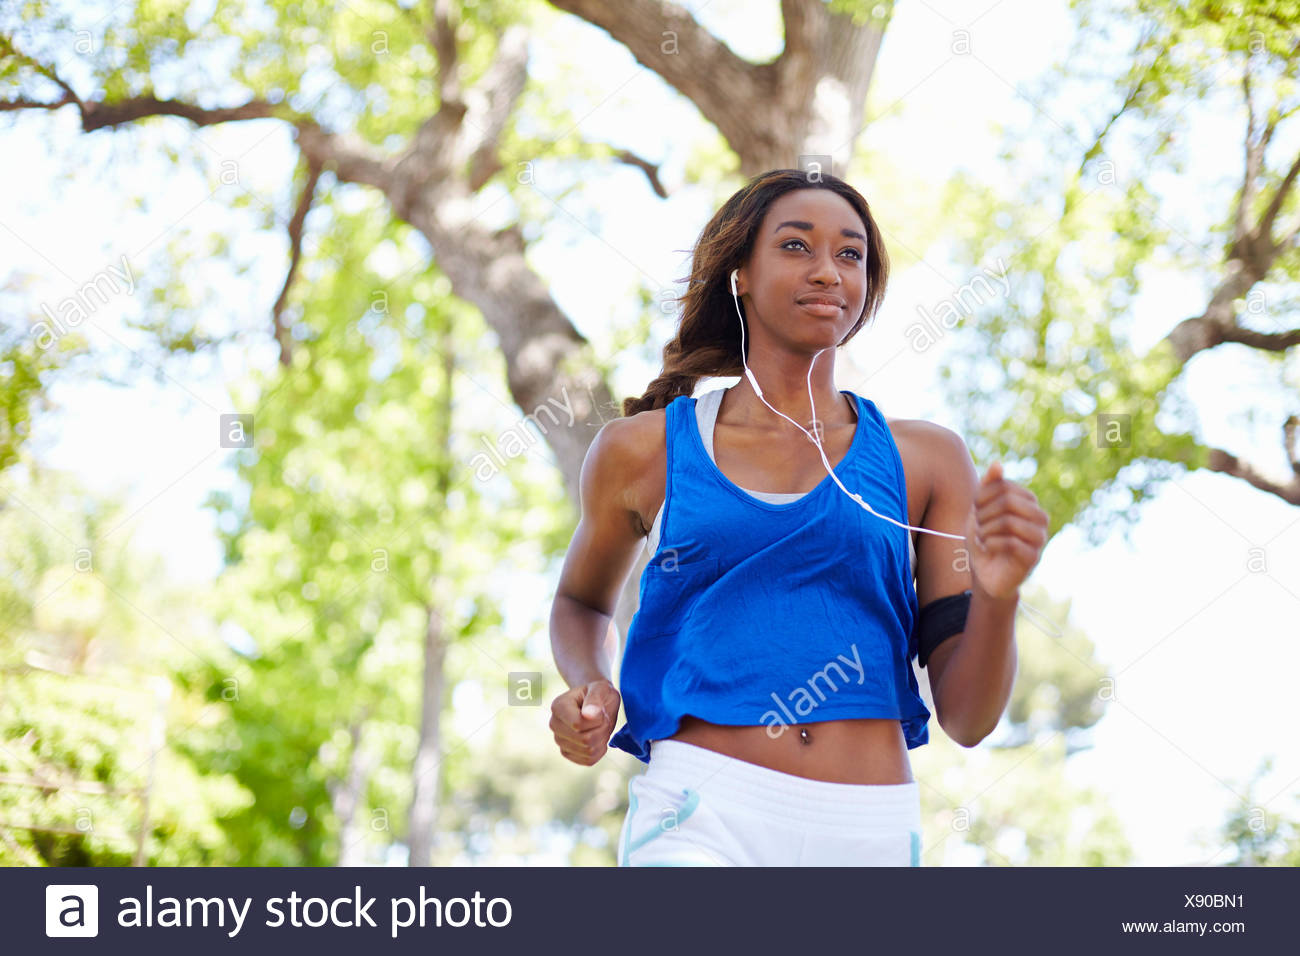 Young female runner running in park - Stock Image